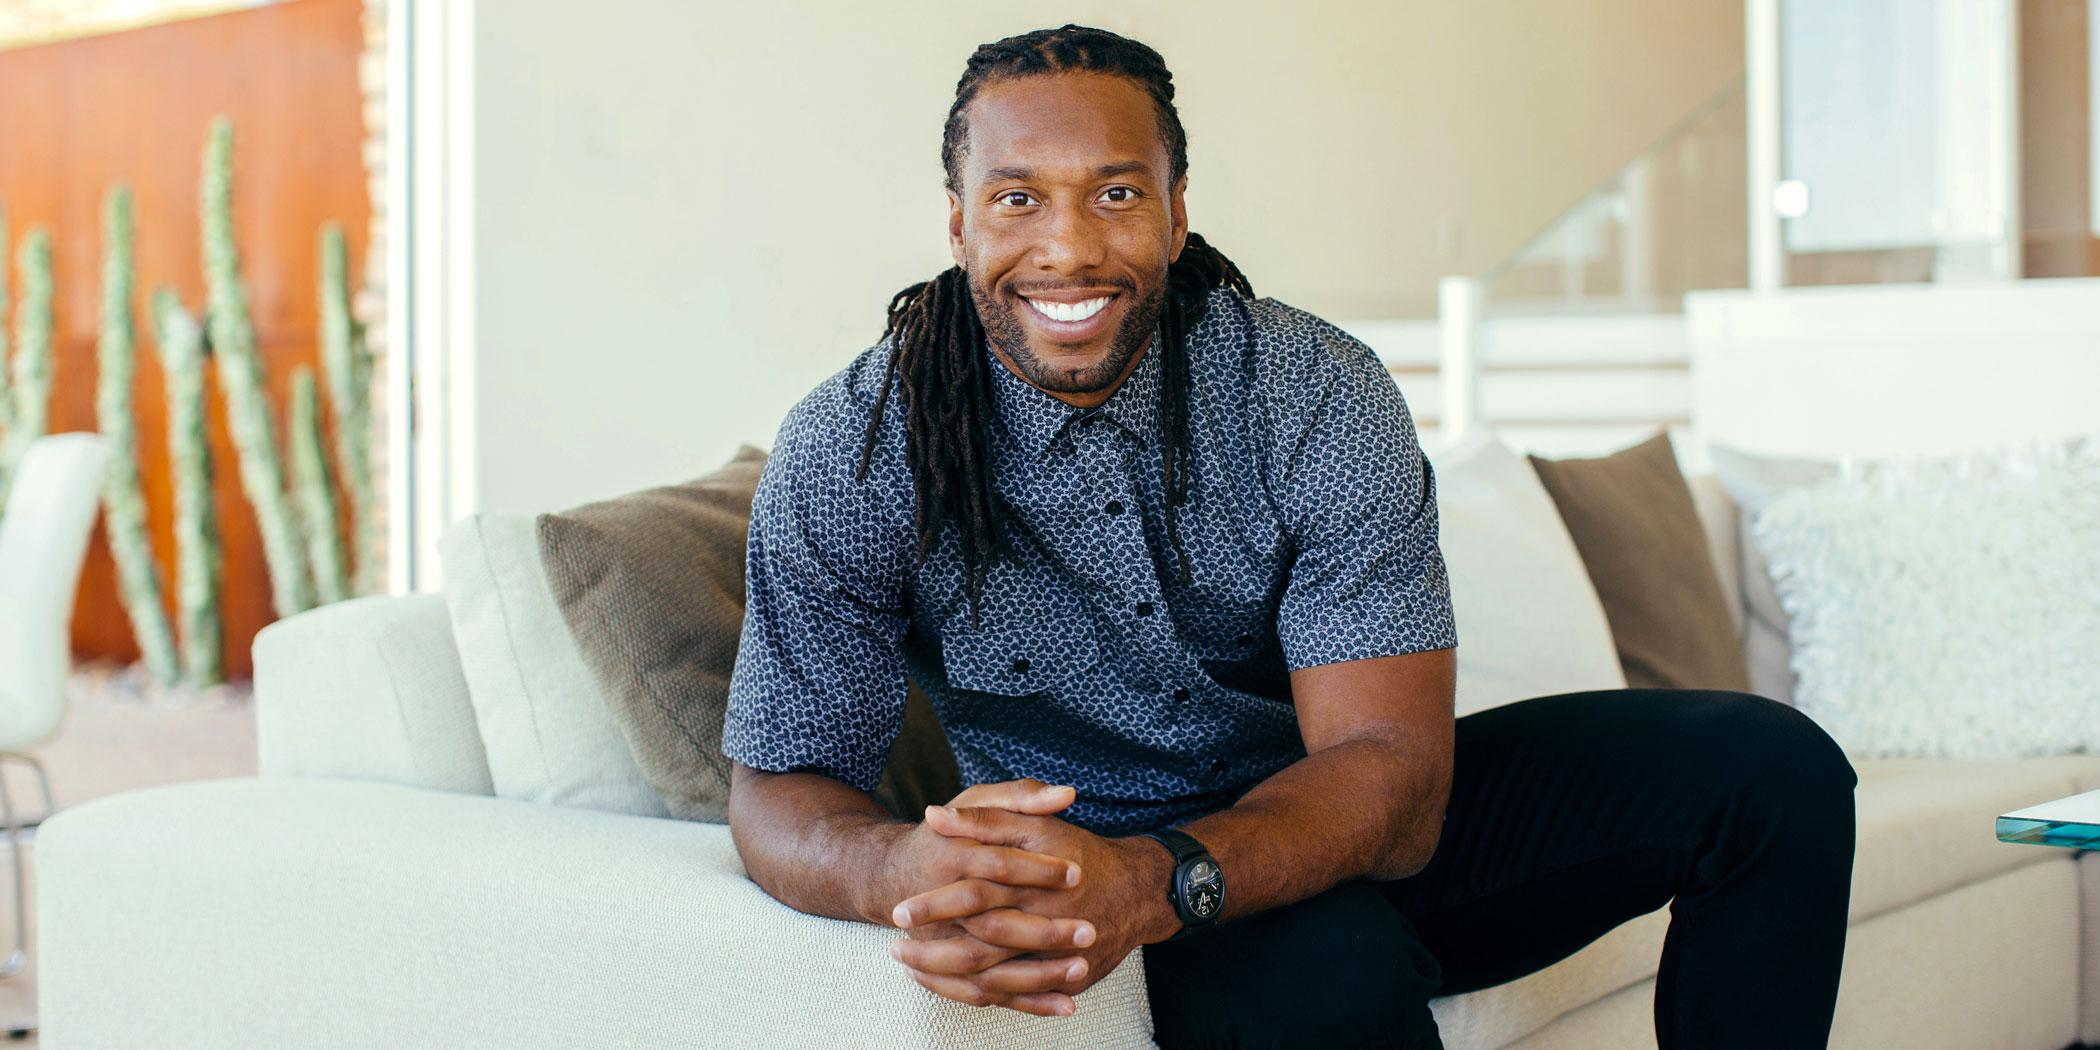 Larry Fitzgerald, Arizona Cardinals football player Photo: Jill Richards